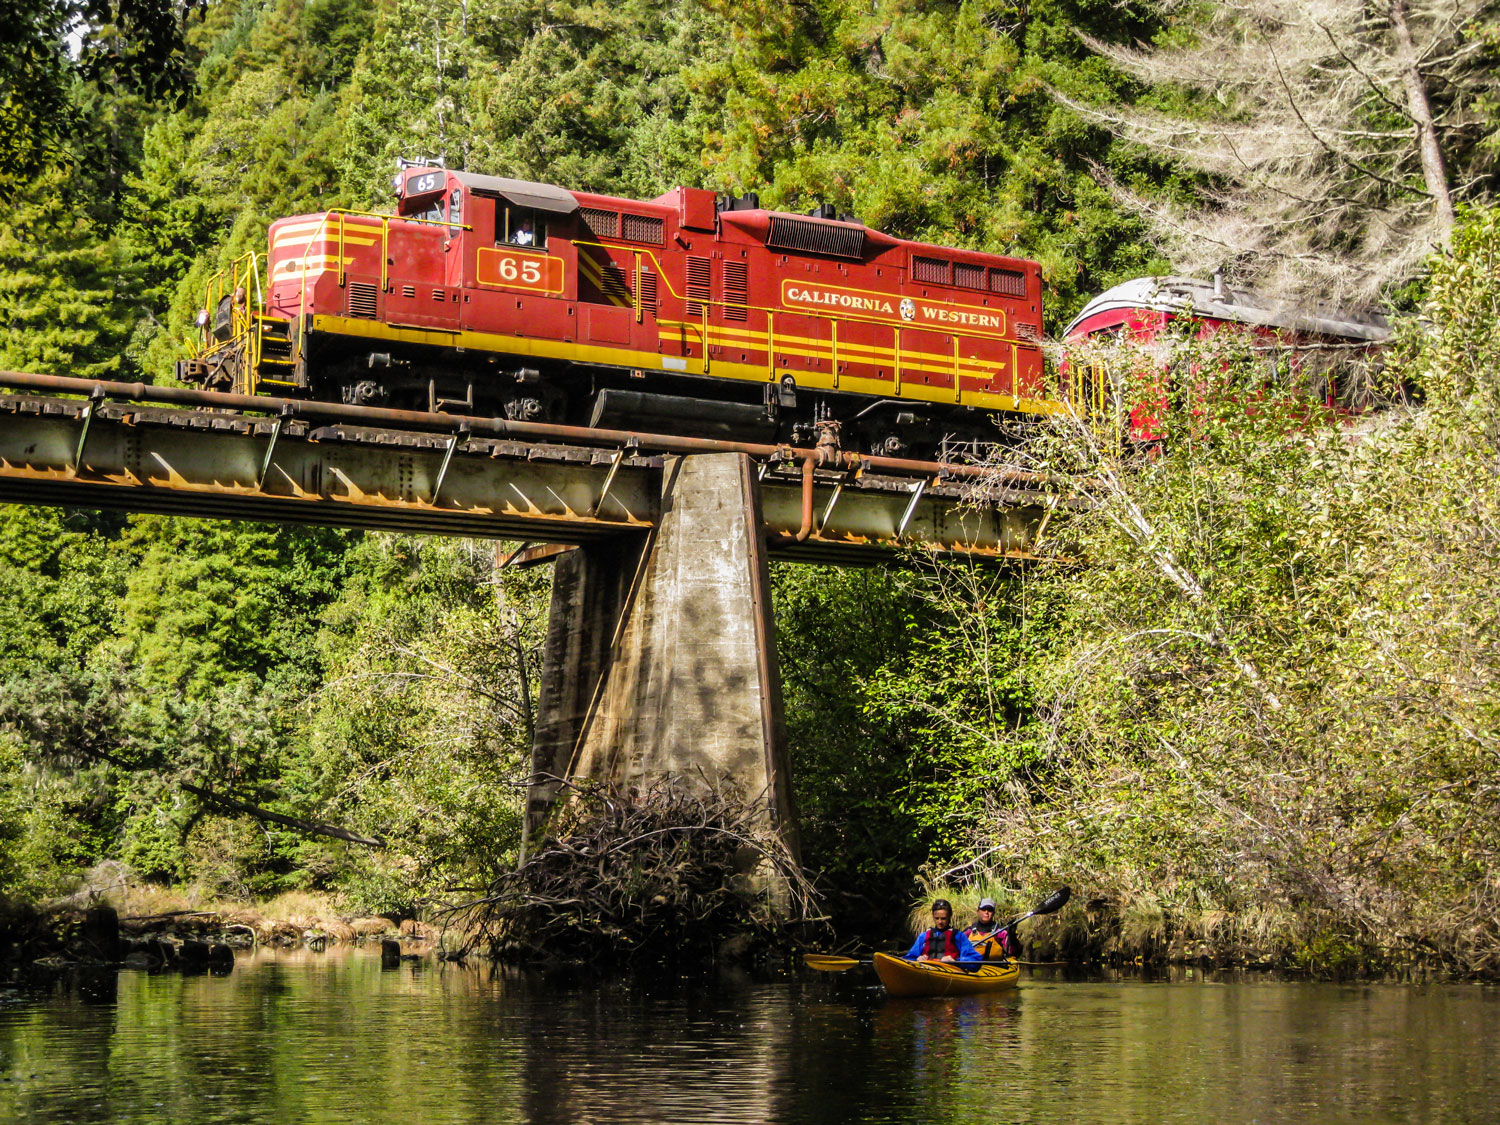 Travel back into the past on the vintage Skunk Train in Fort Bragg